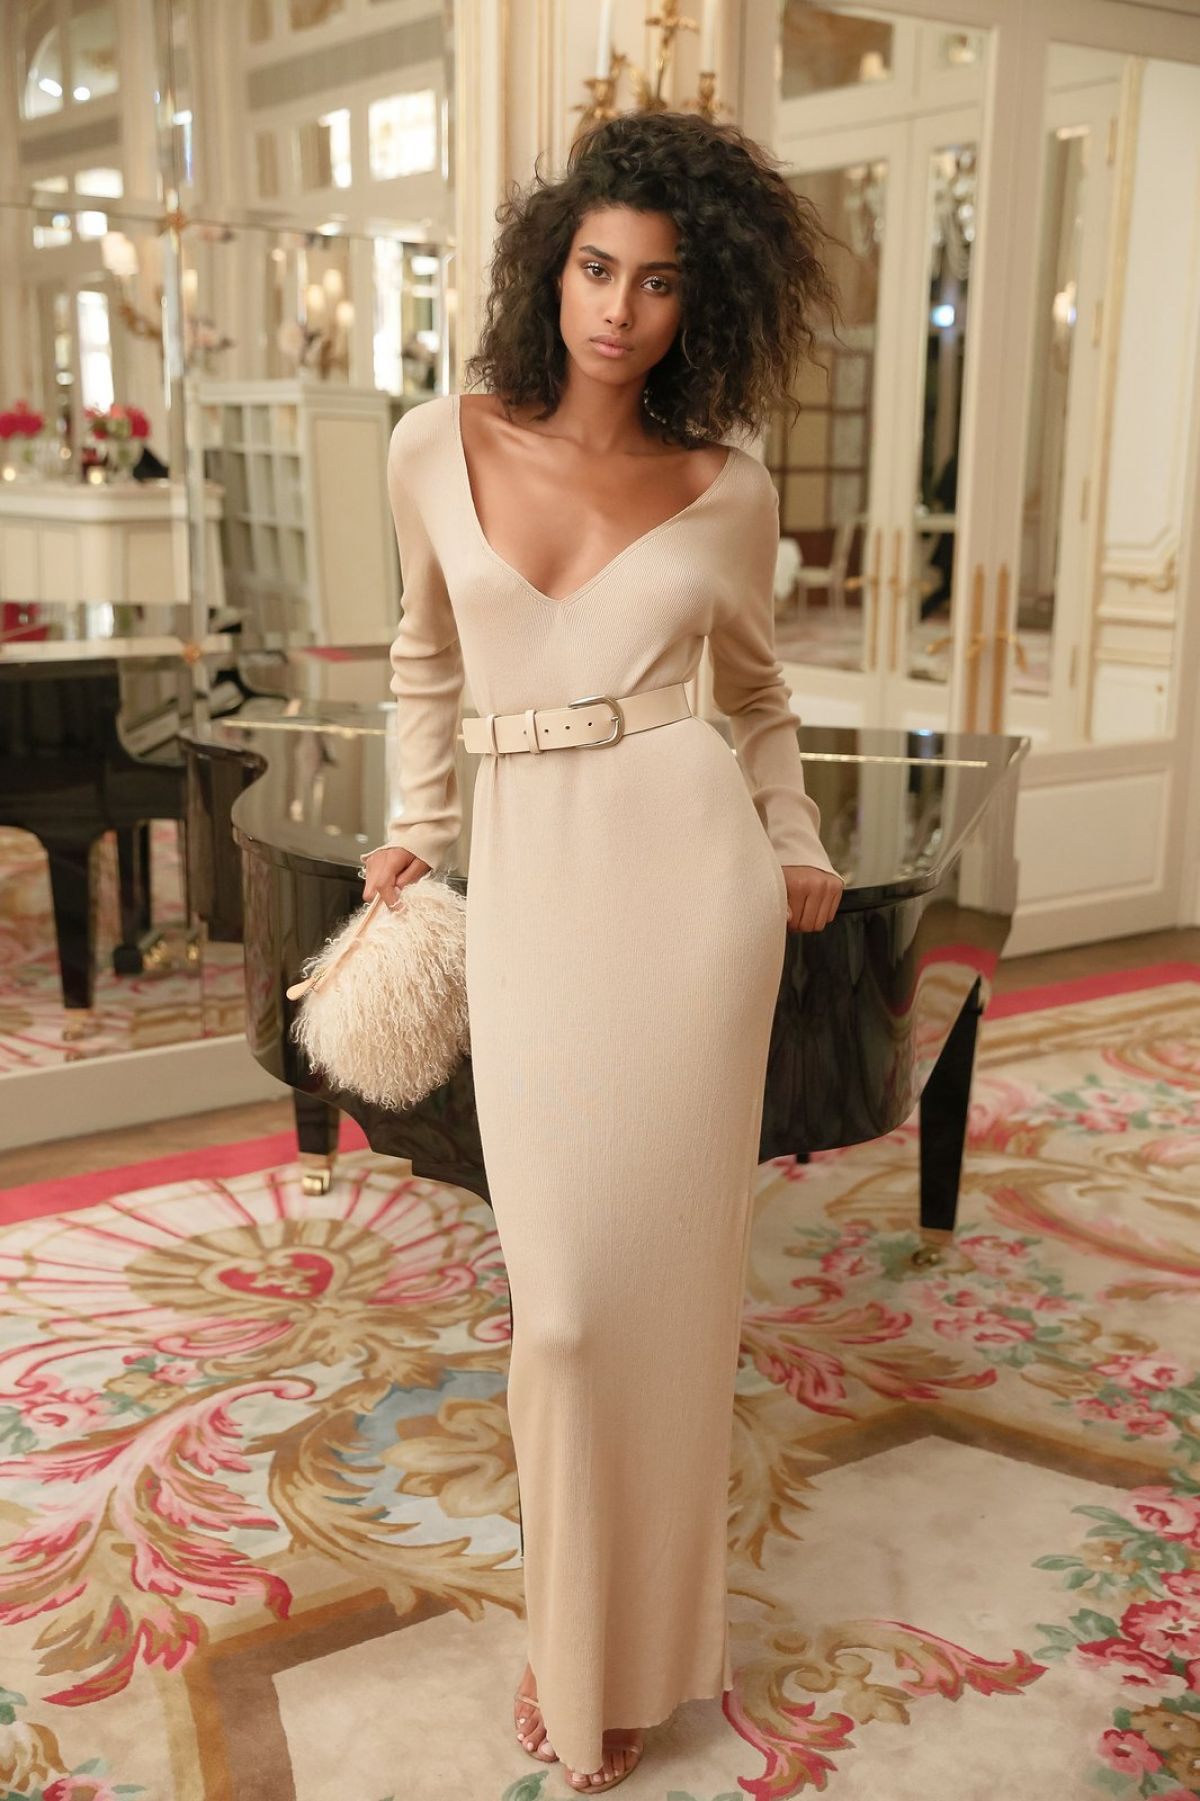 IMAAN HAMMAM at Americans in Paris Cocktail Party 09/30/2016